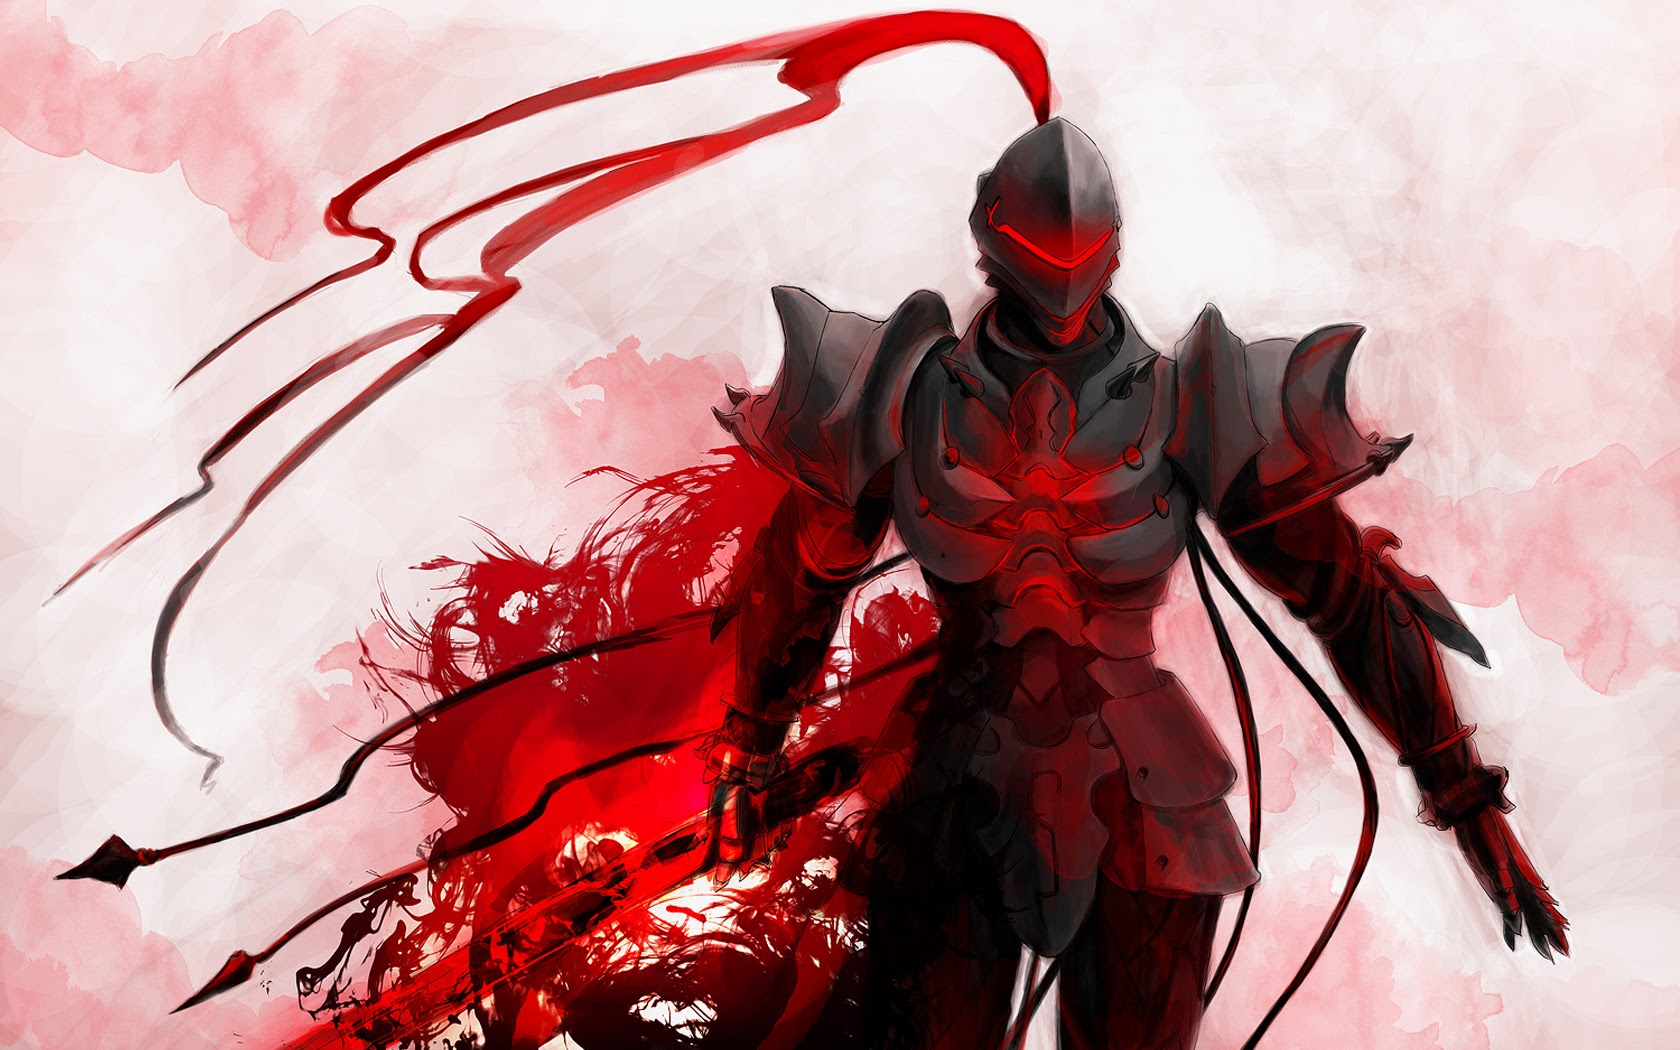 Berserker fate zero wallpaper hd black armor knight 1680x1050jpg 1680x1050